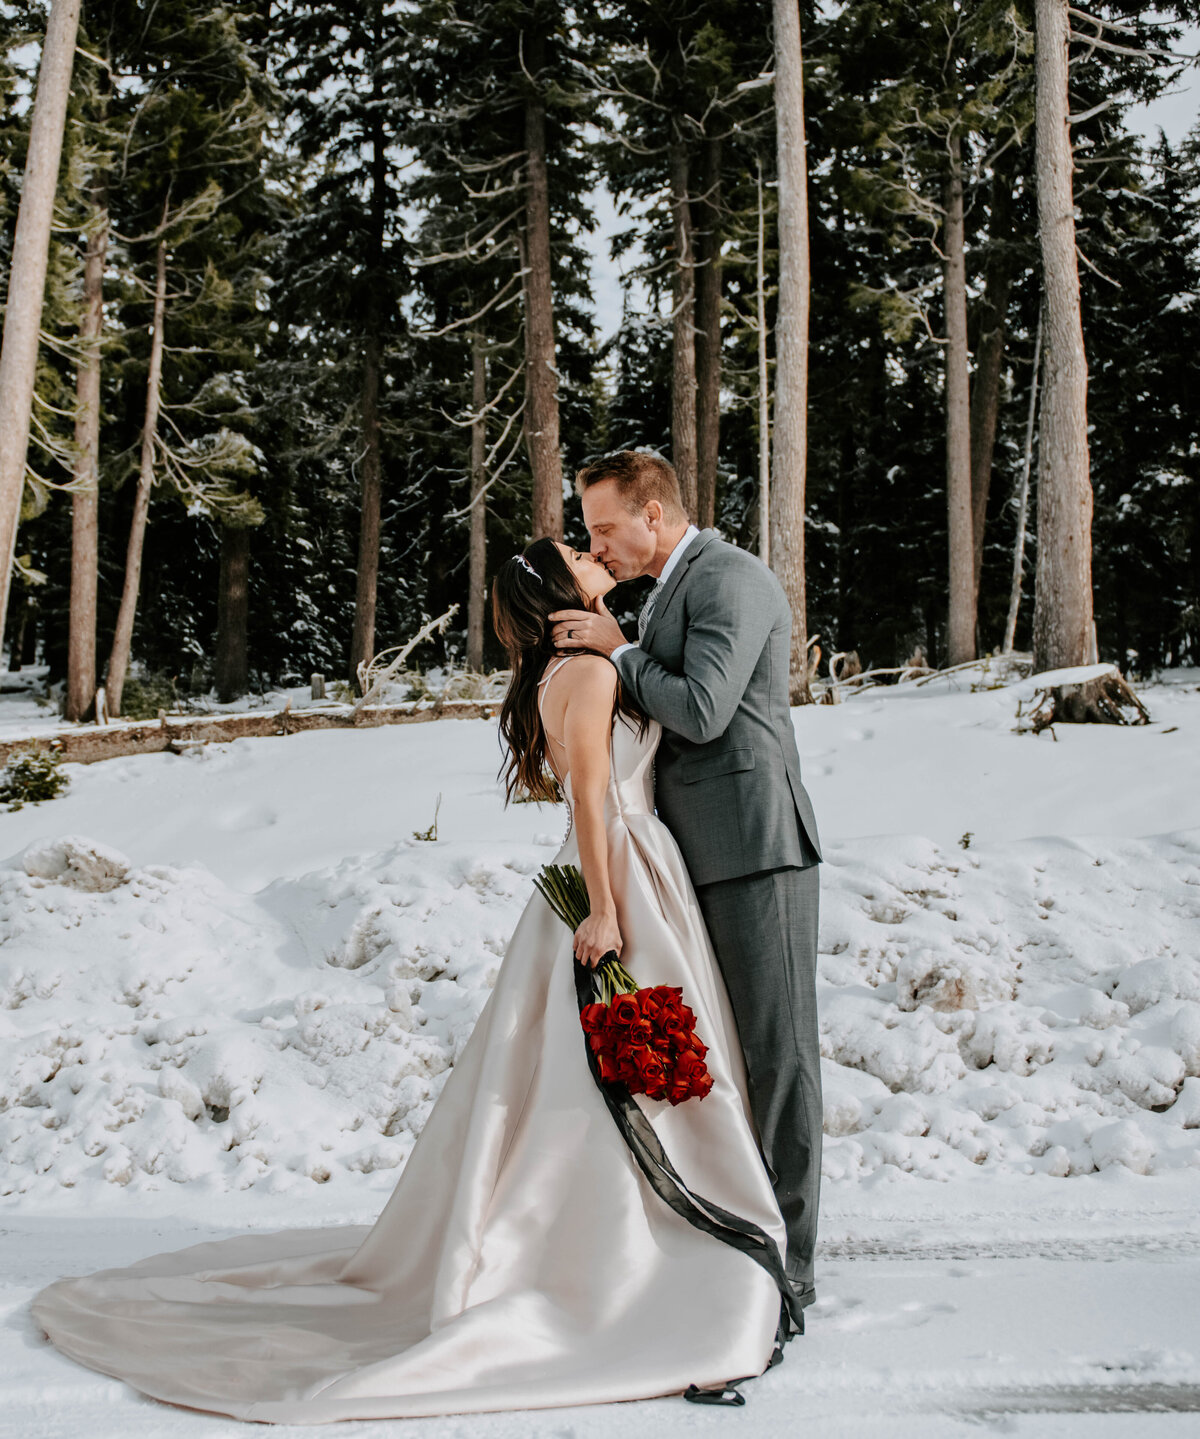 mt-bachelor-snow-winter-elopement-bend-oregon-wedding-photographer-2168